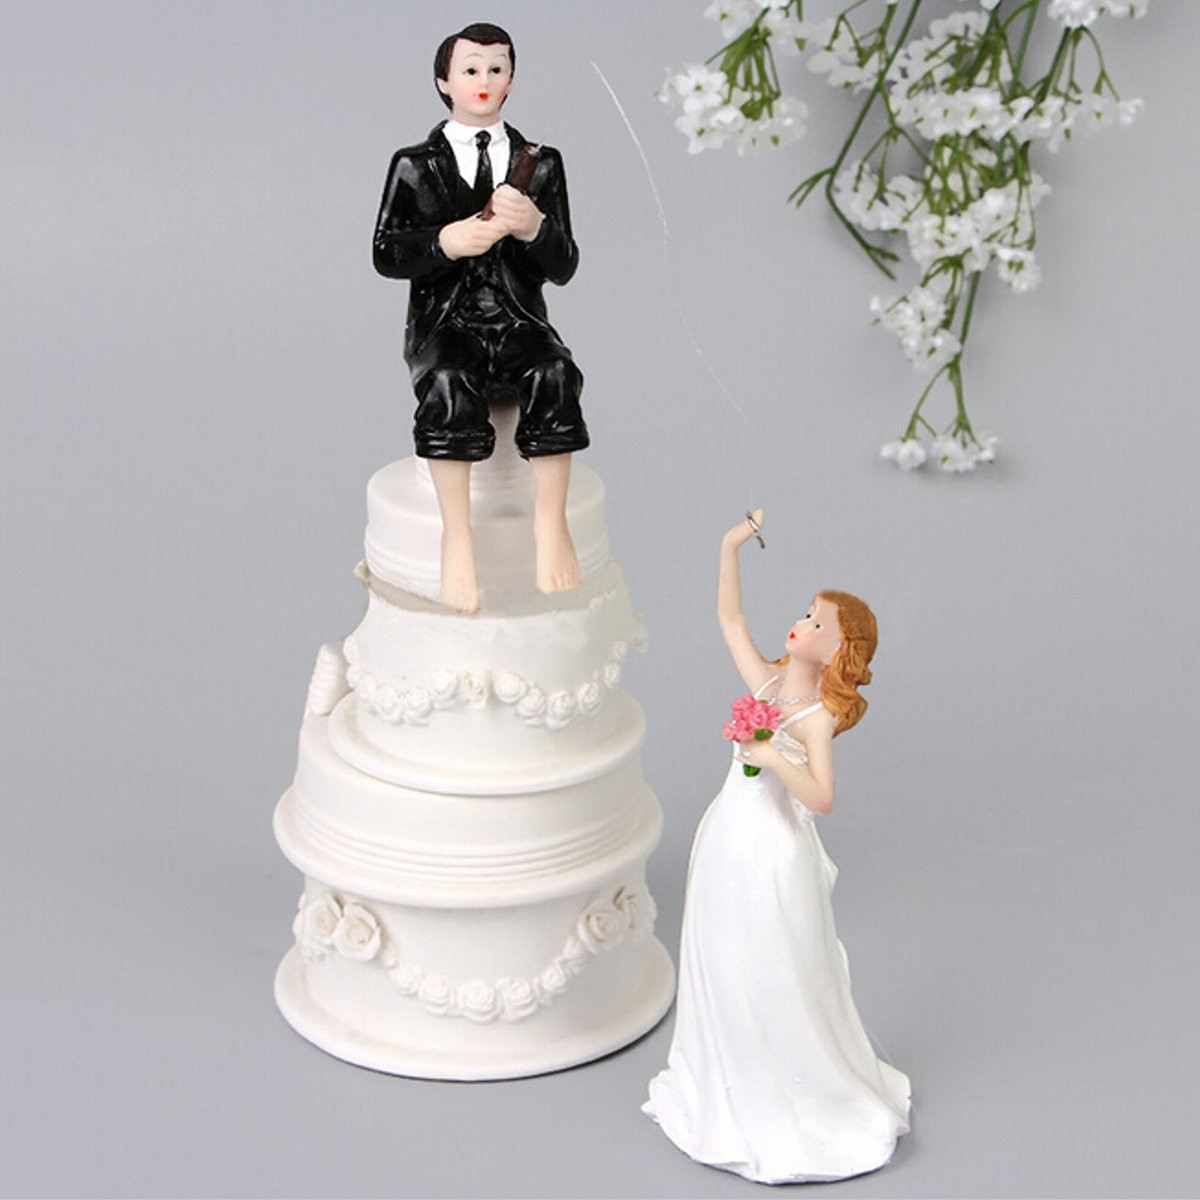 Couple Figurine Wedding Cake Topper Modern Style Resin Craft Bride And Groom Romantic Decoration Good Gift(China (Mainland))